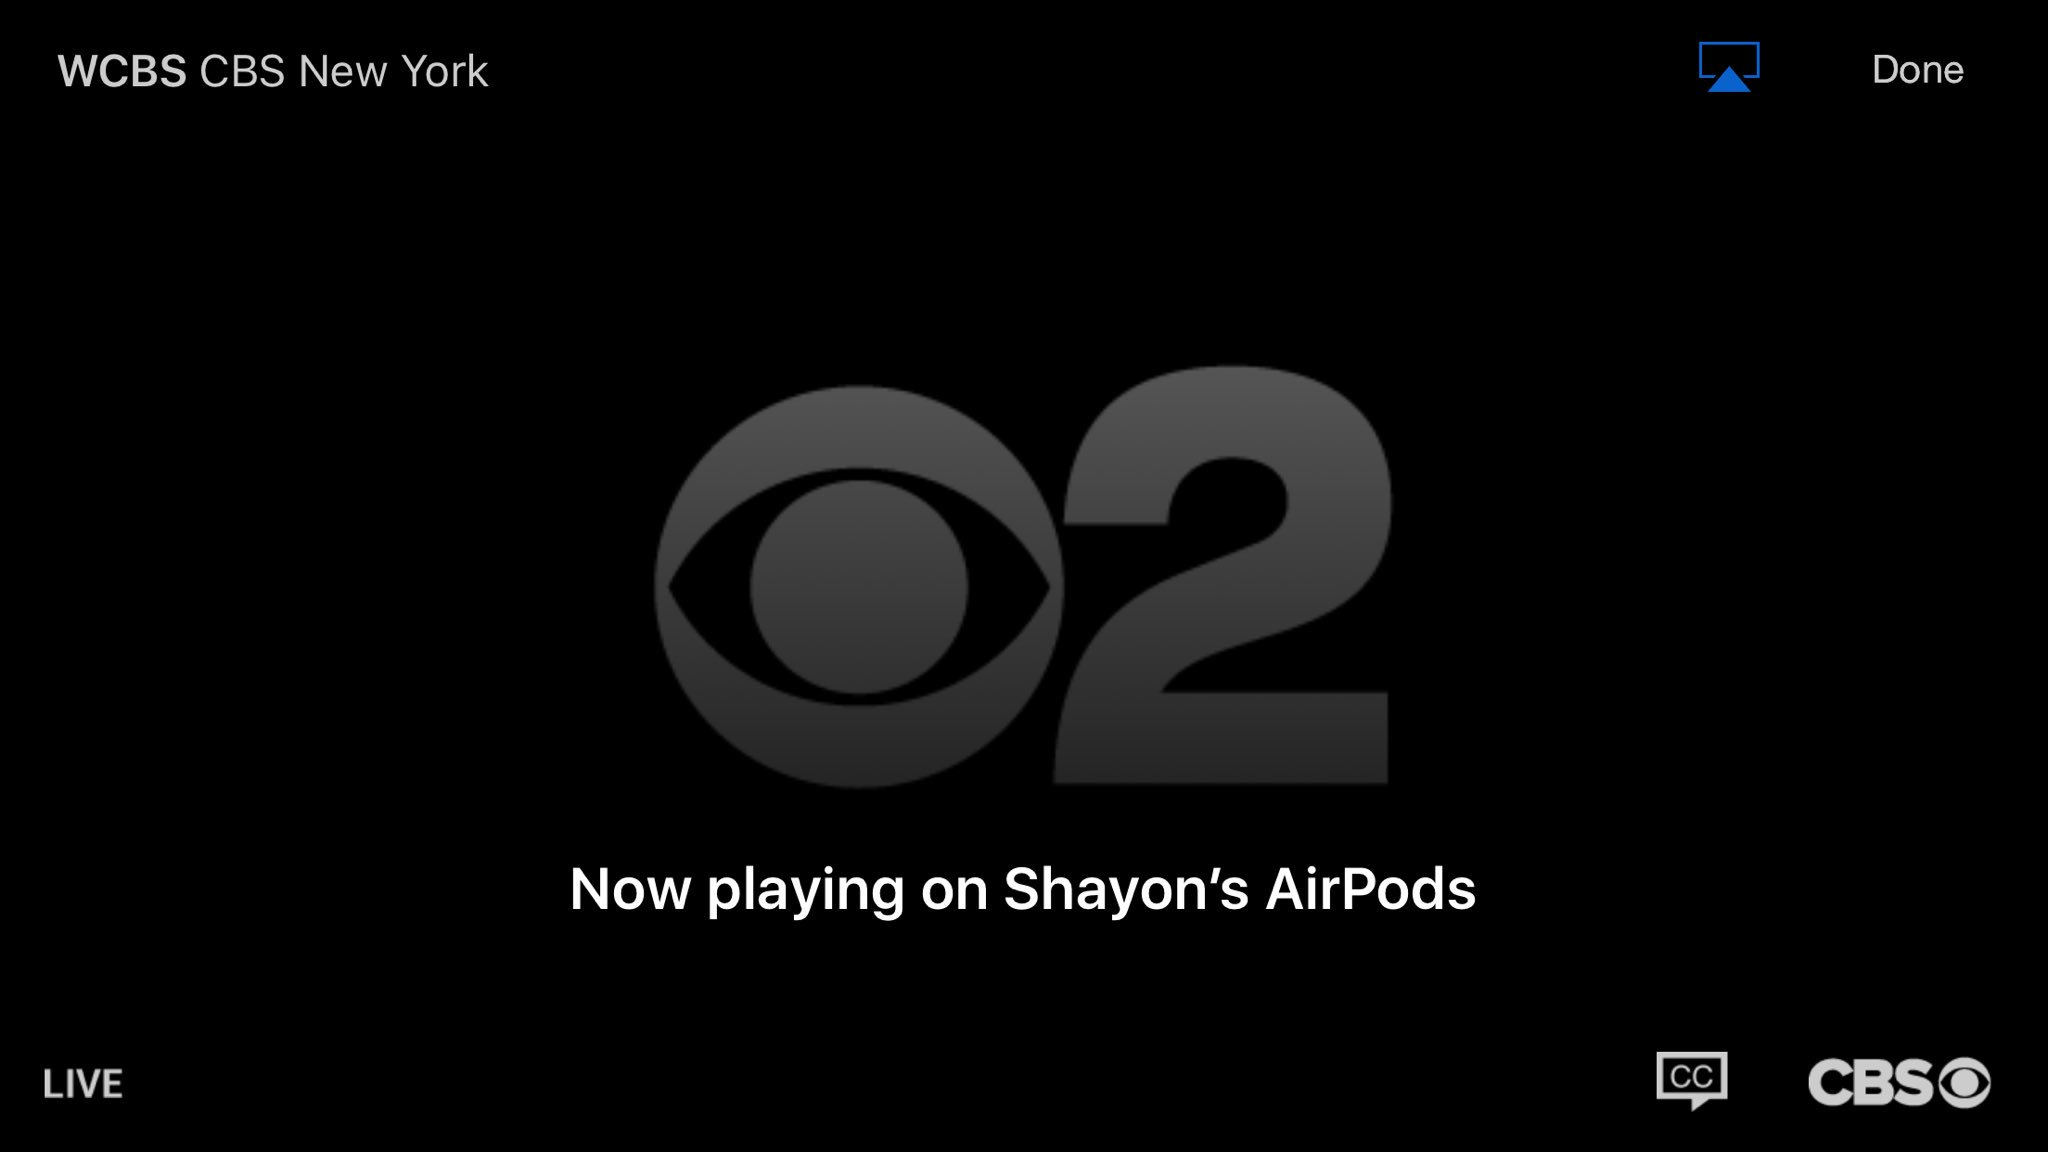 @CBSAAHelp What's wrong with your iOS app.I'm unable to watch live tv with my AirPods or Beats headphones on. https://t.co/YUC0ravGZn